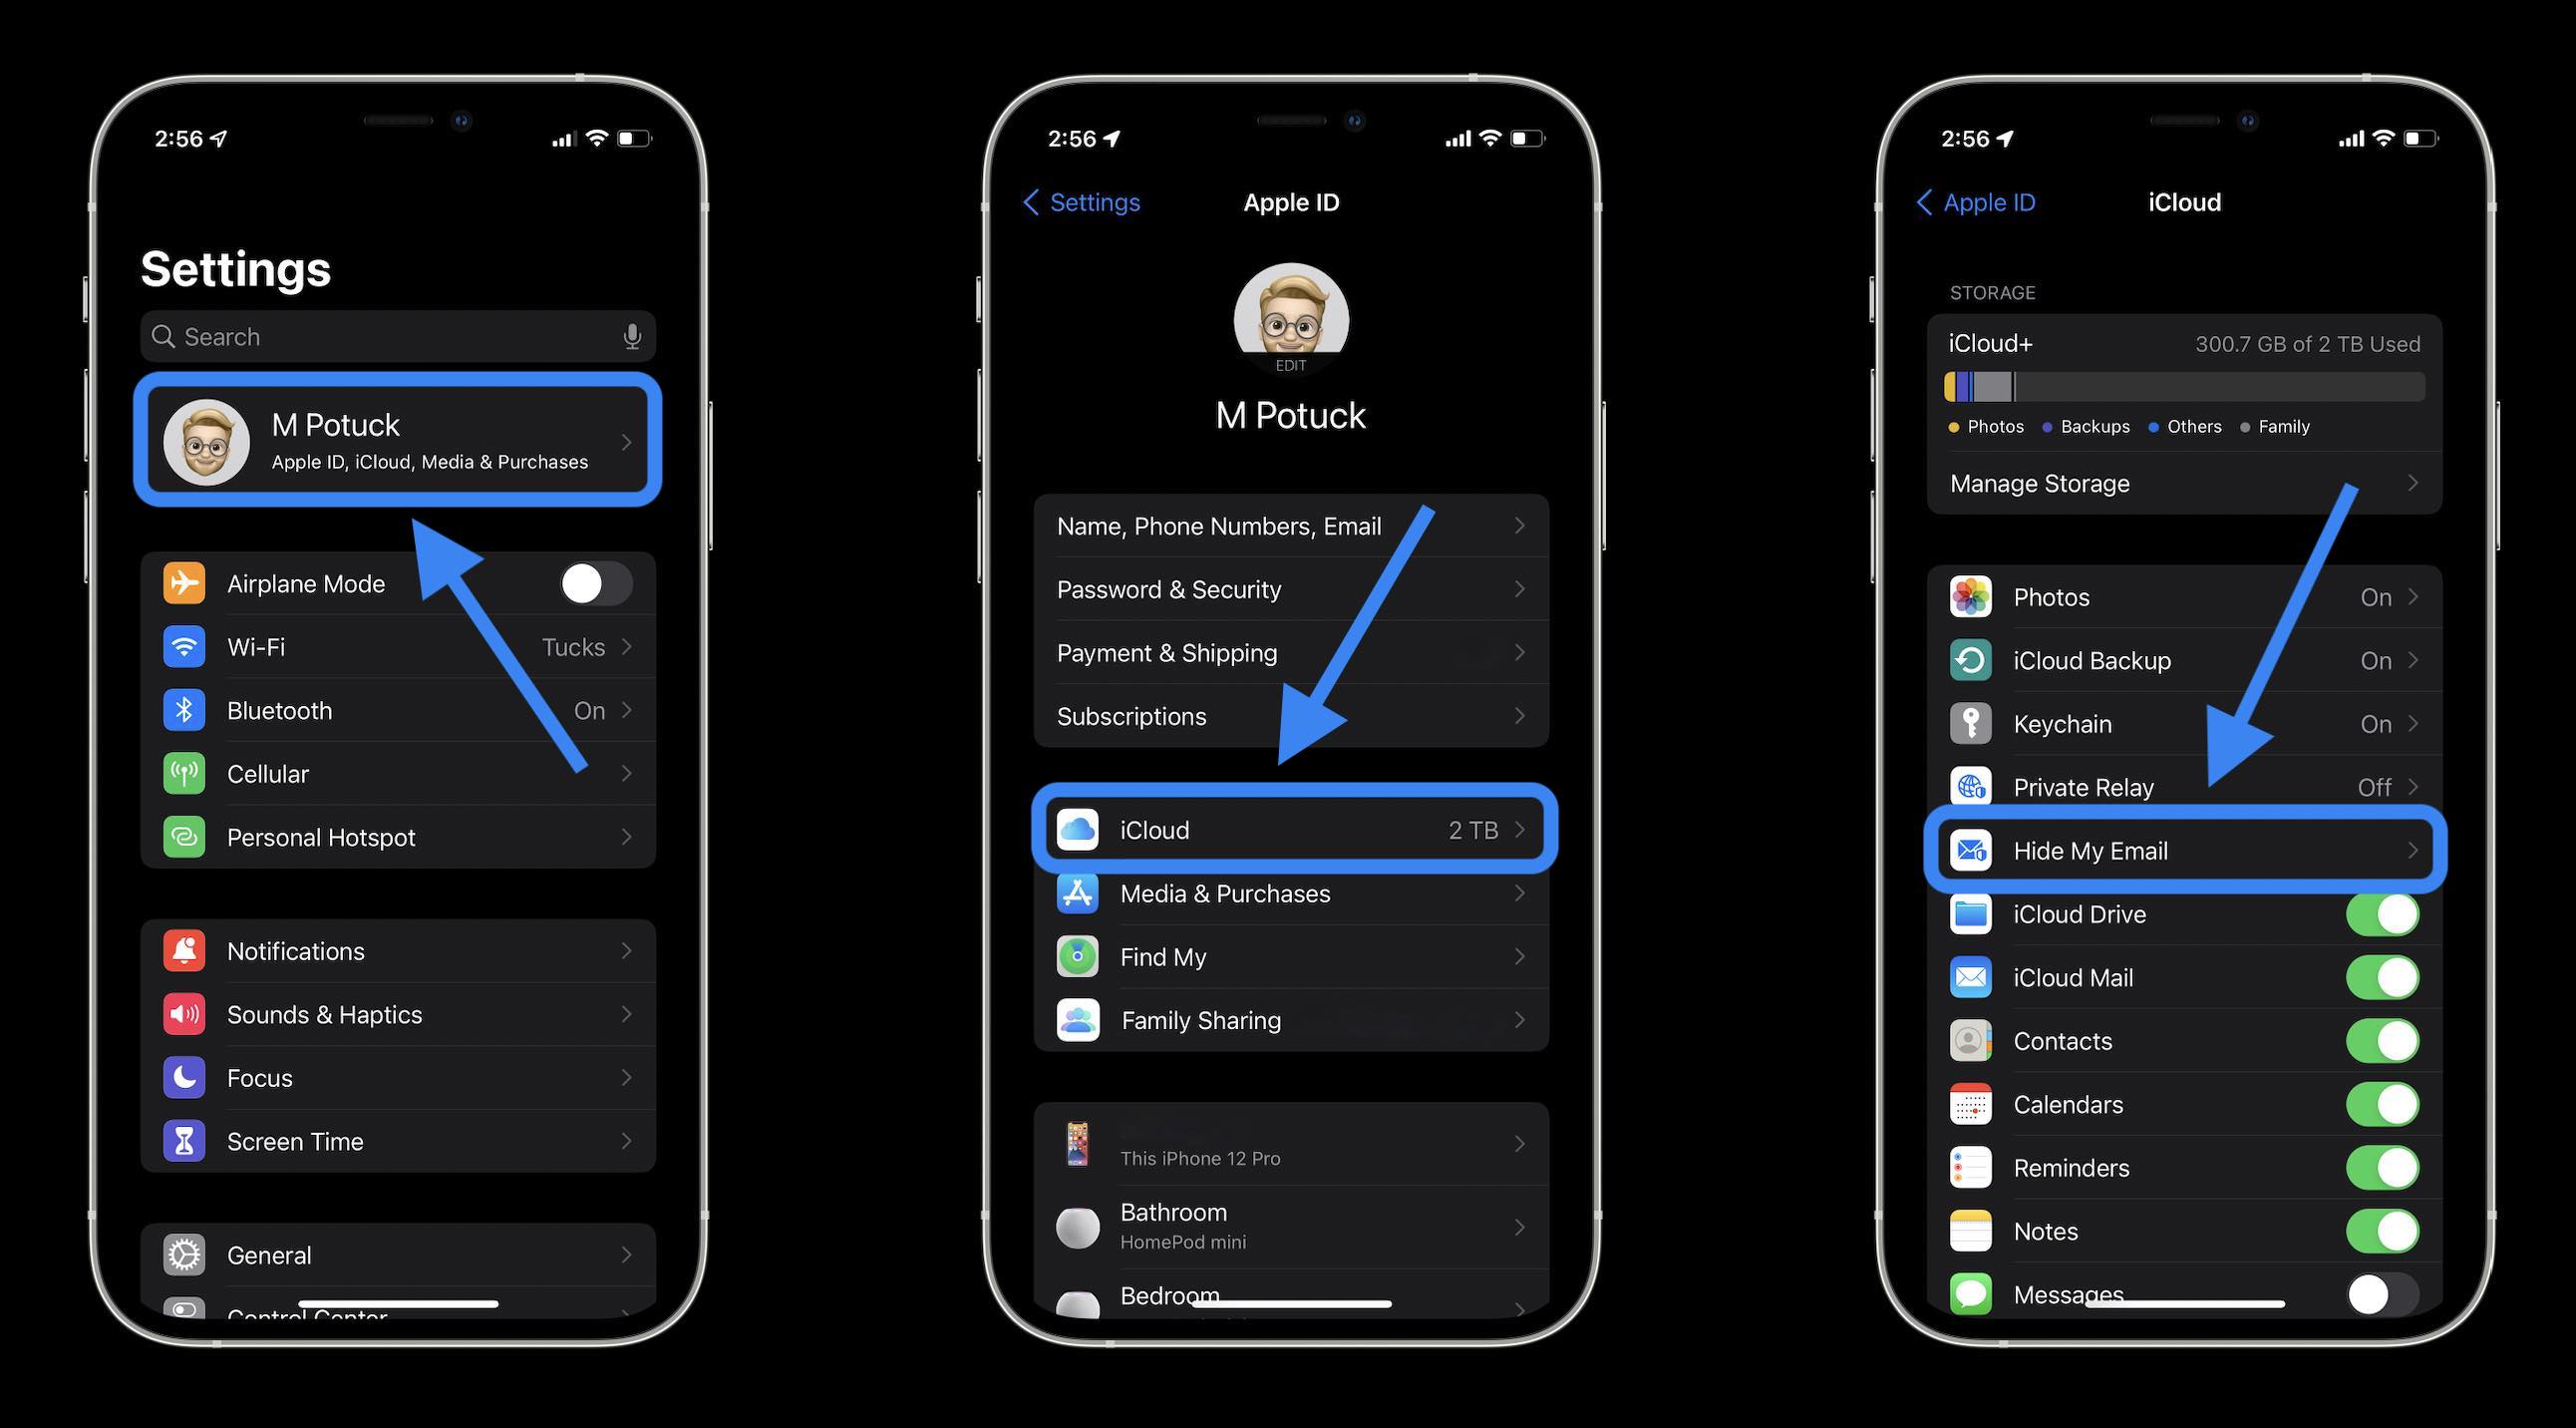 How to Hide My Email on iPhone in iOS 15 with iCloud+ - Head to Settings app, tap your name, then Hide My Email